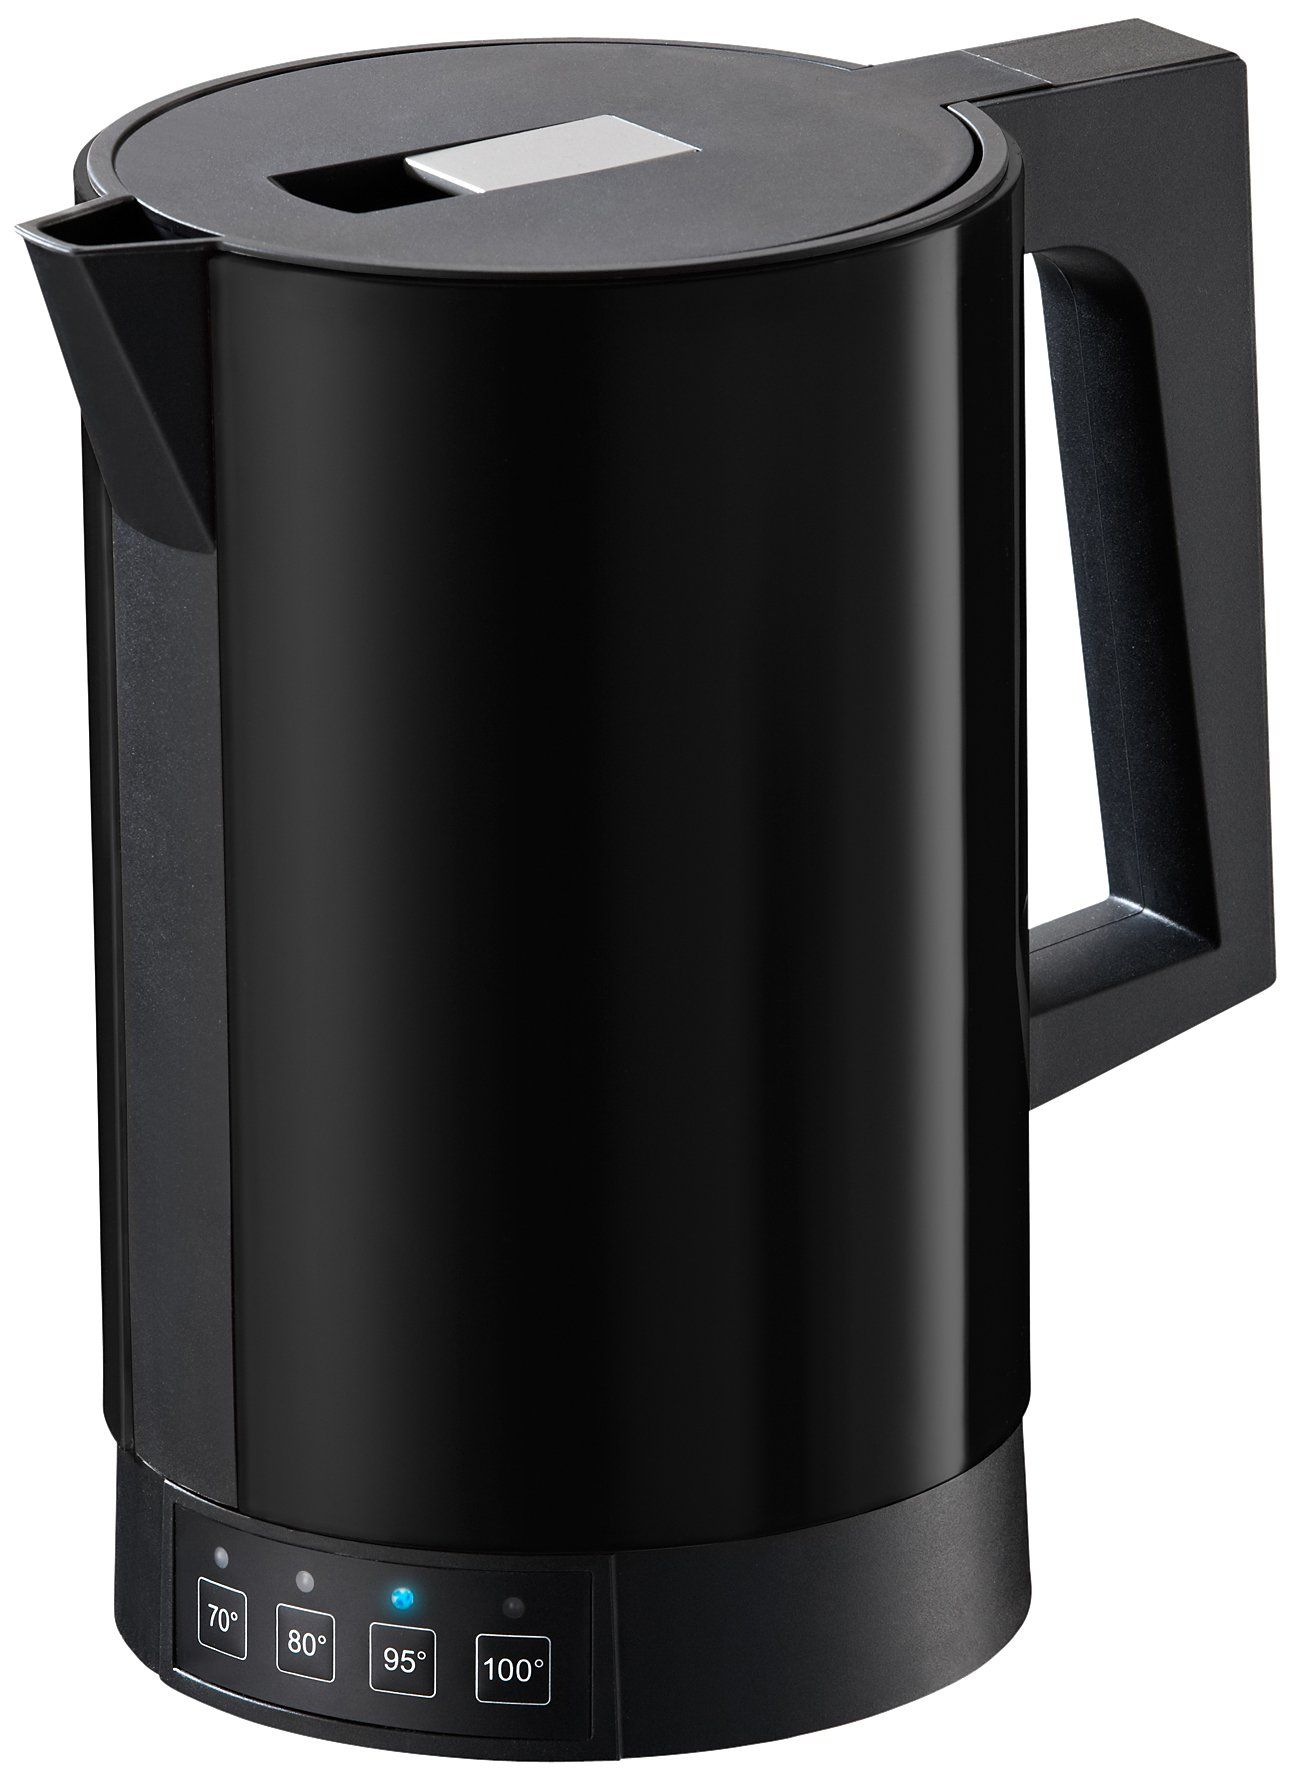 5l accents range only electricals co uk small kitchen appliances - Explore Water Boiler Electric Kettles And More